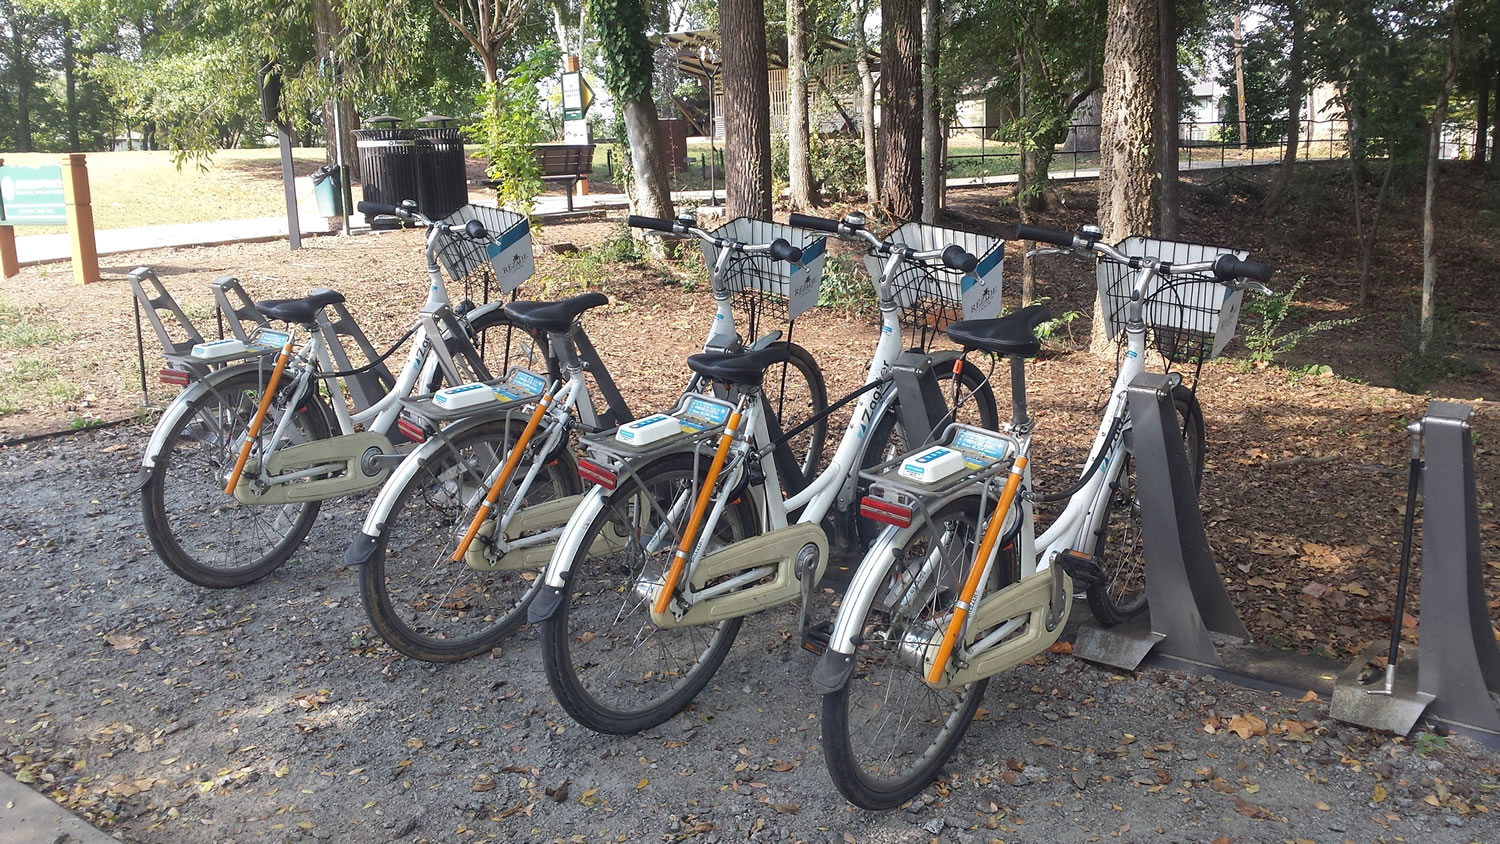 Bike Share for riding the Greenprints Trail